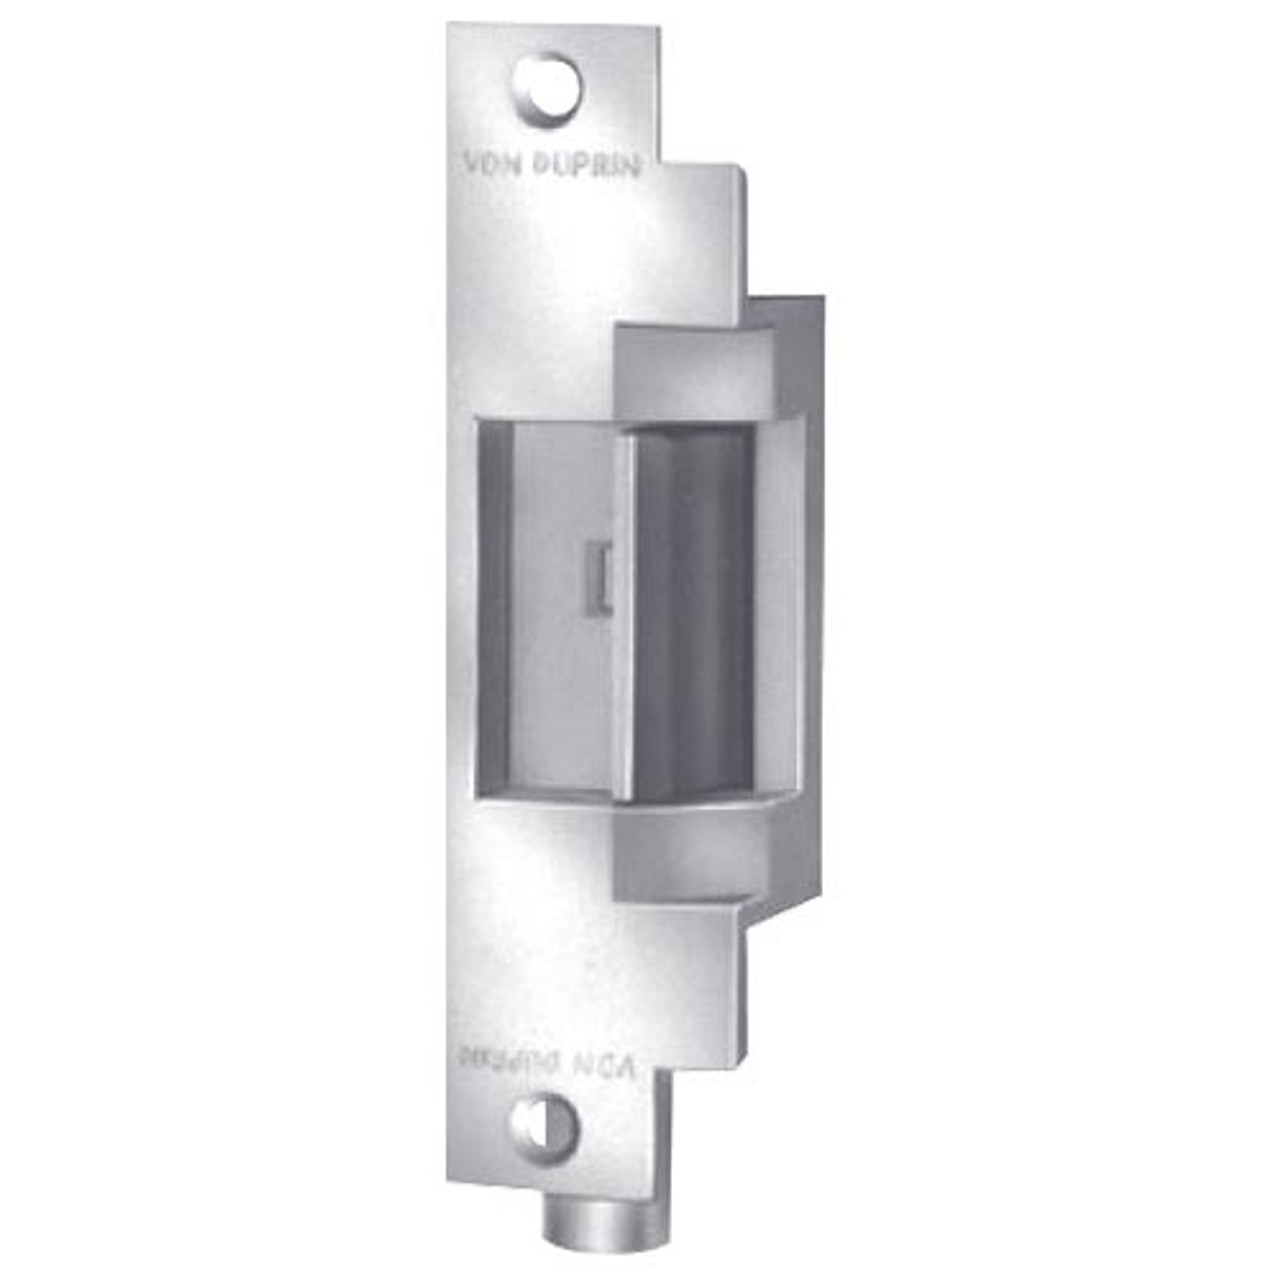 6212-DS-24VDC-US32 Von Duprin Electric Strike in Bright Stainless Steel Finish